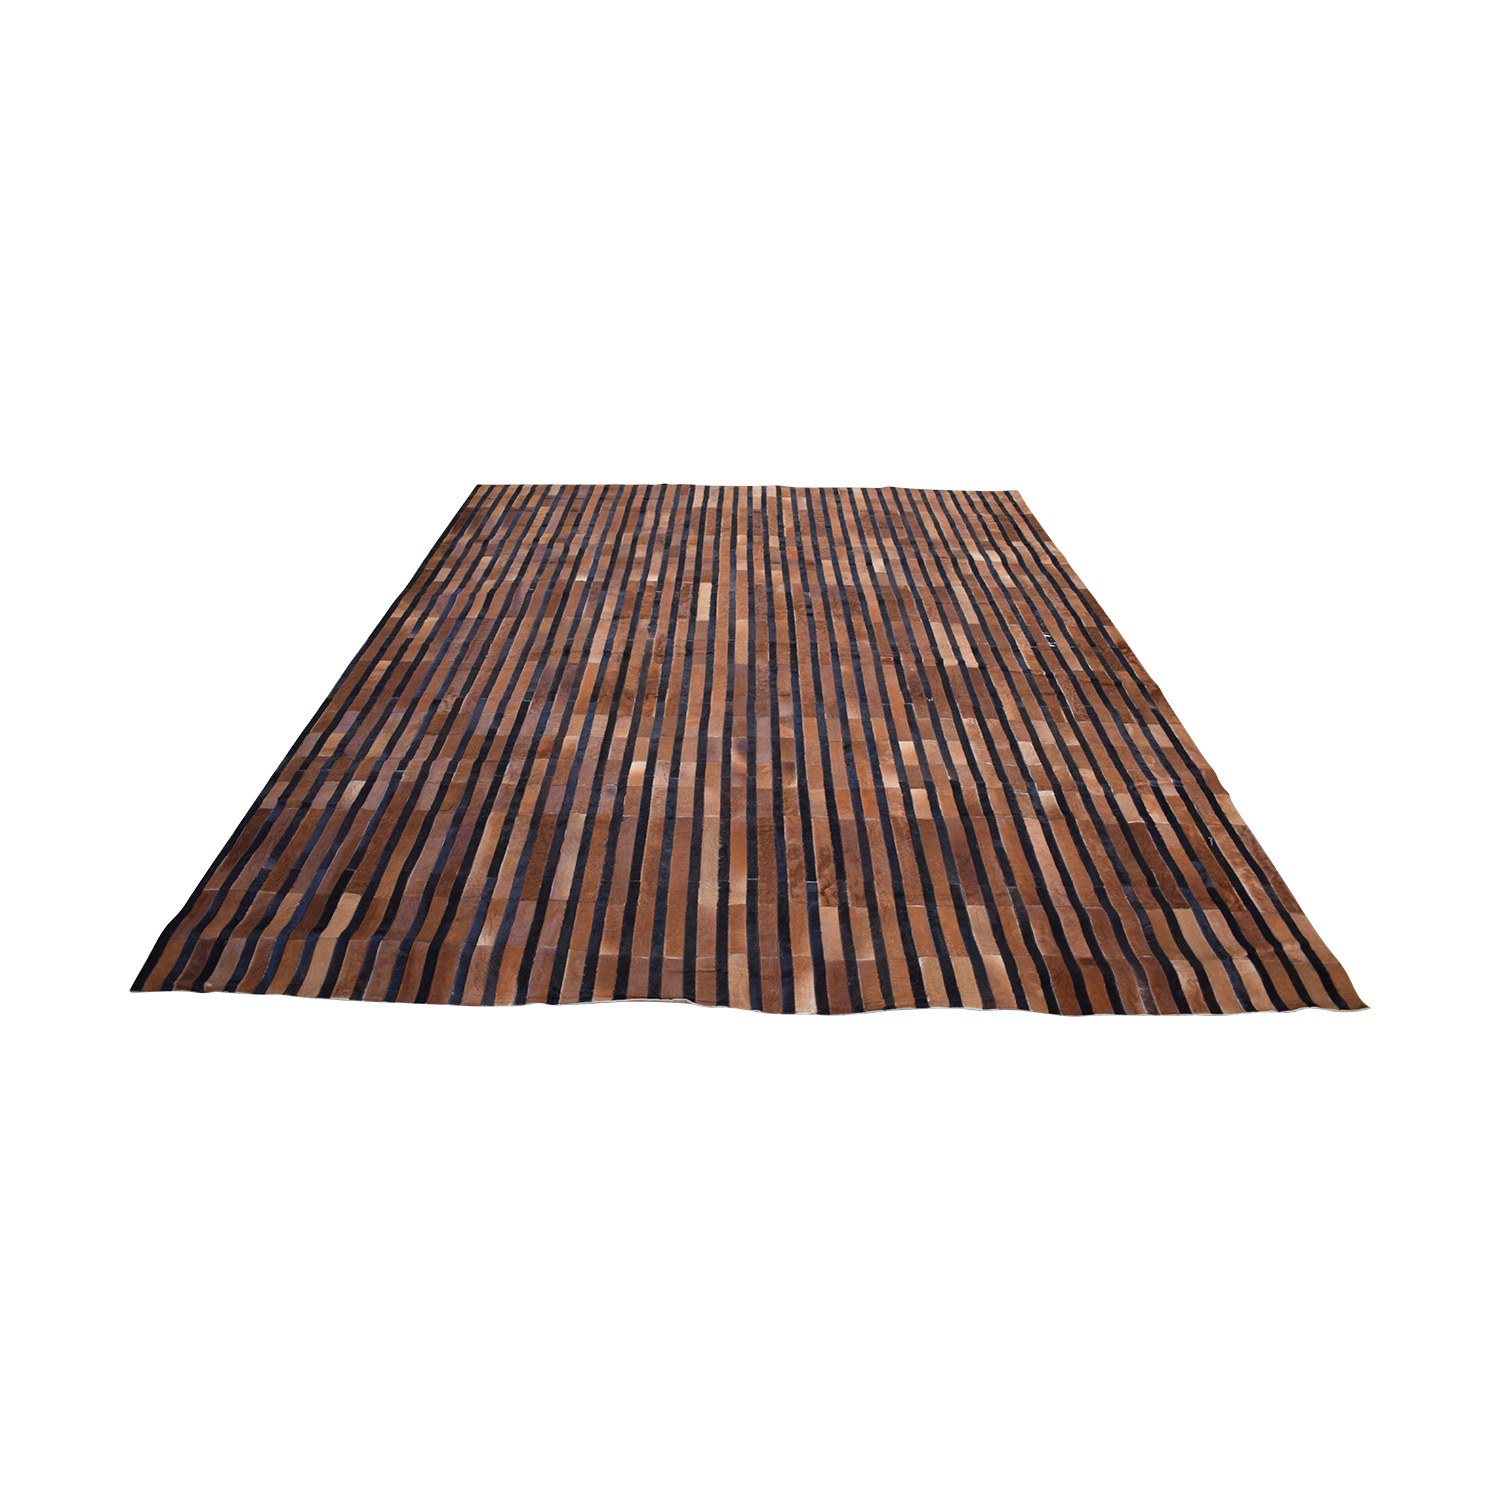 ABC Carpet & Home ABC Carpet & Home Striped Rug nj